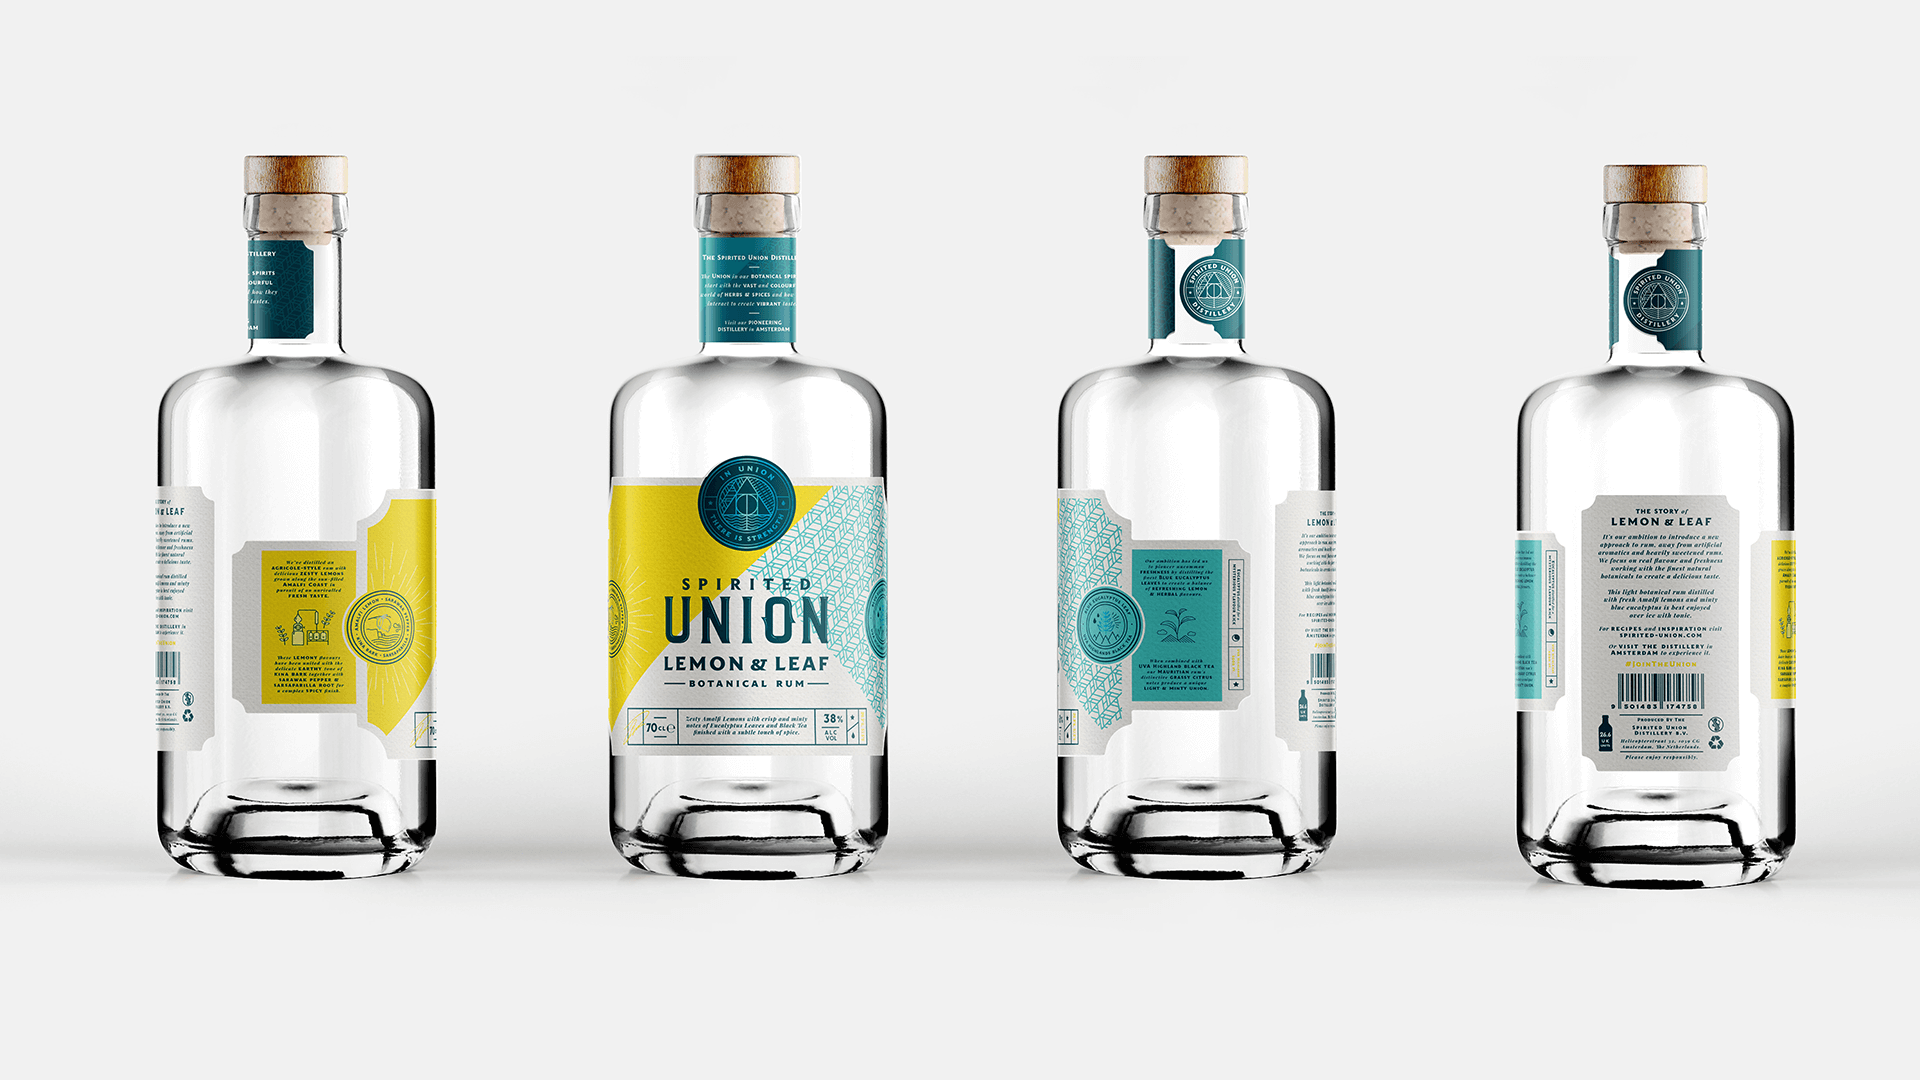 Spirited Union Distillery Lemon and Leaf white Rum, label design, Packaging Design, Iconography, Logo and New Product Development created by Mutiny Agency.